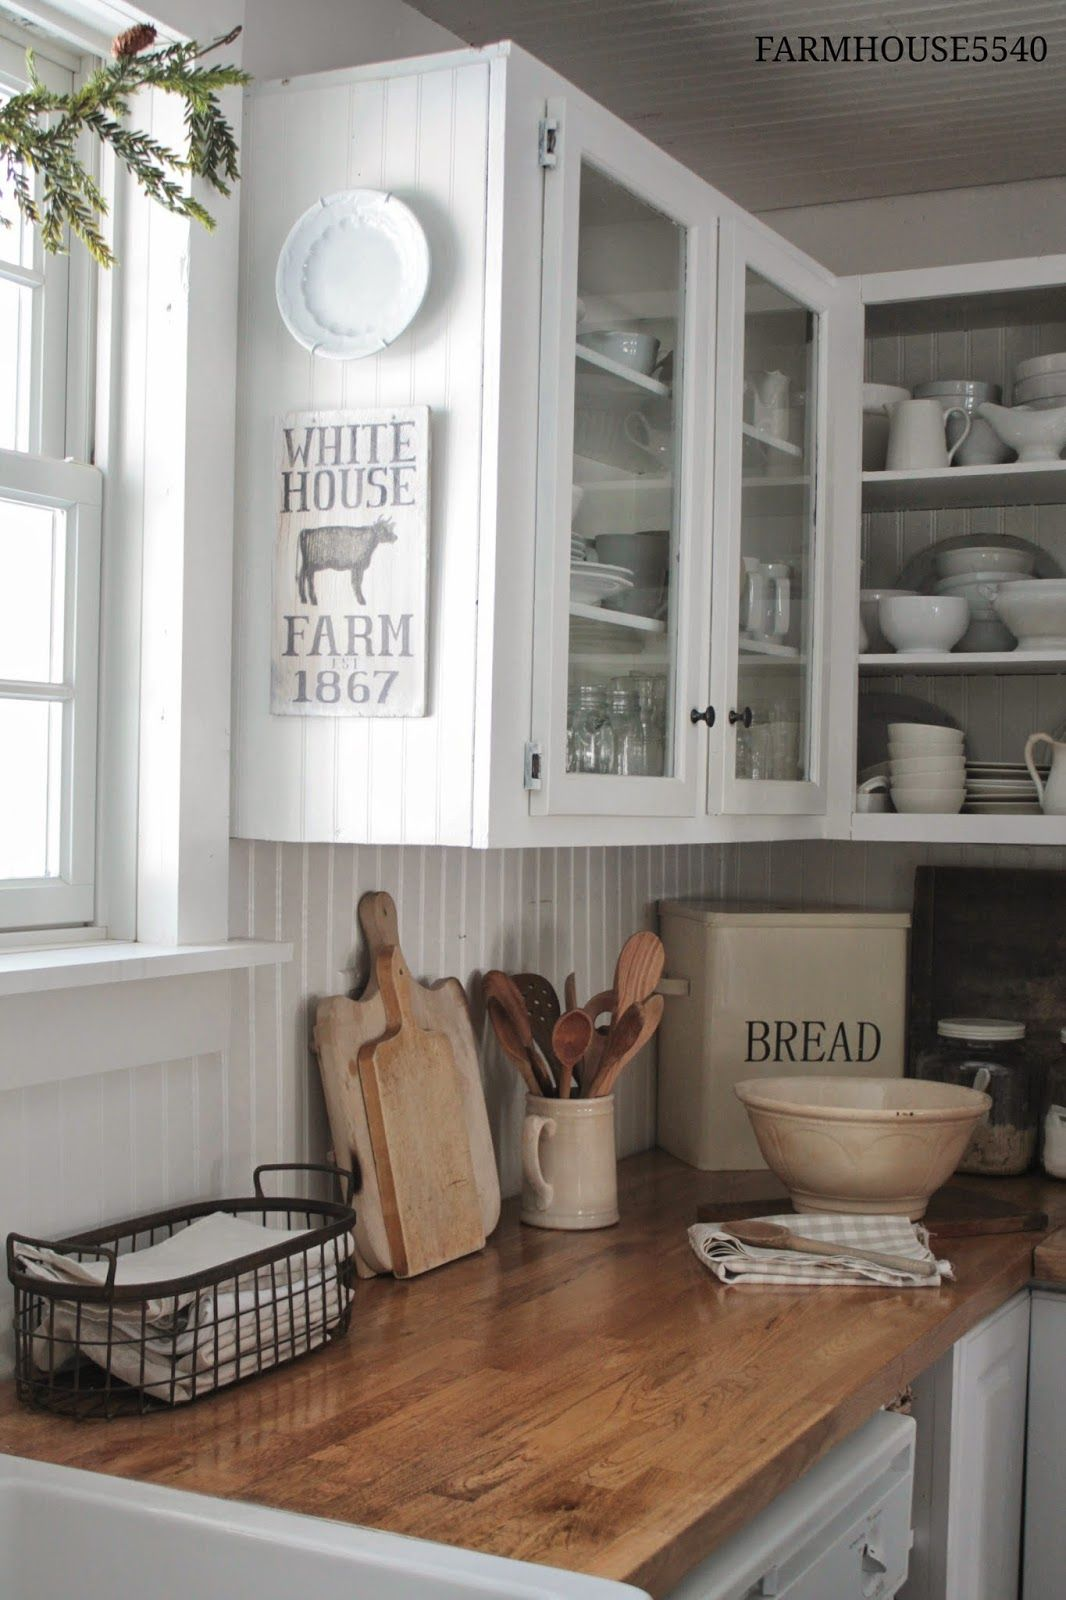 7 ideas for a farmhouse inspired kitchen on a budget for Kitchen ideas on a budget uk